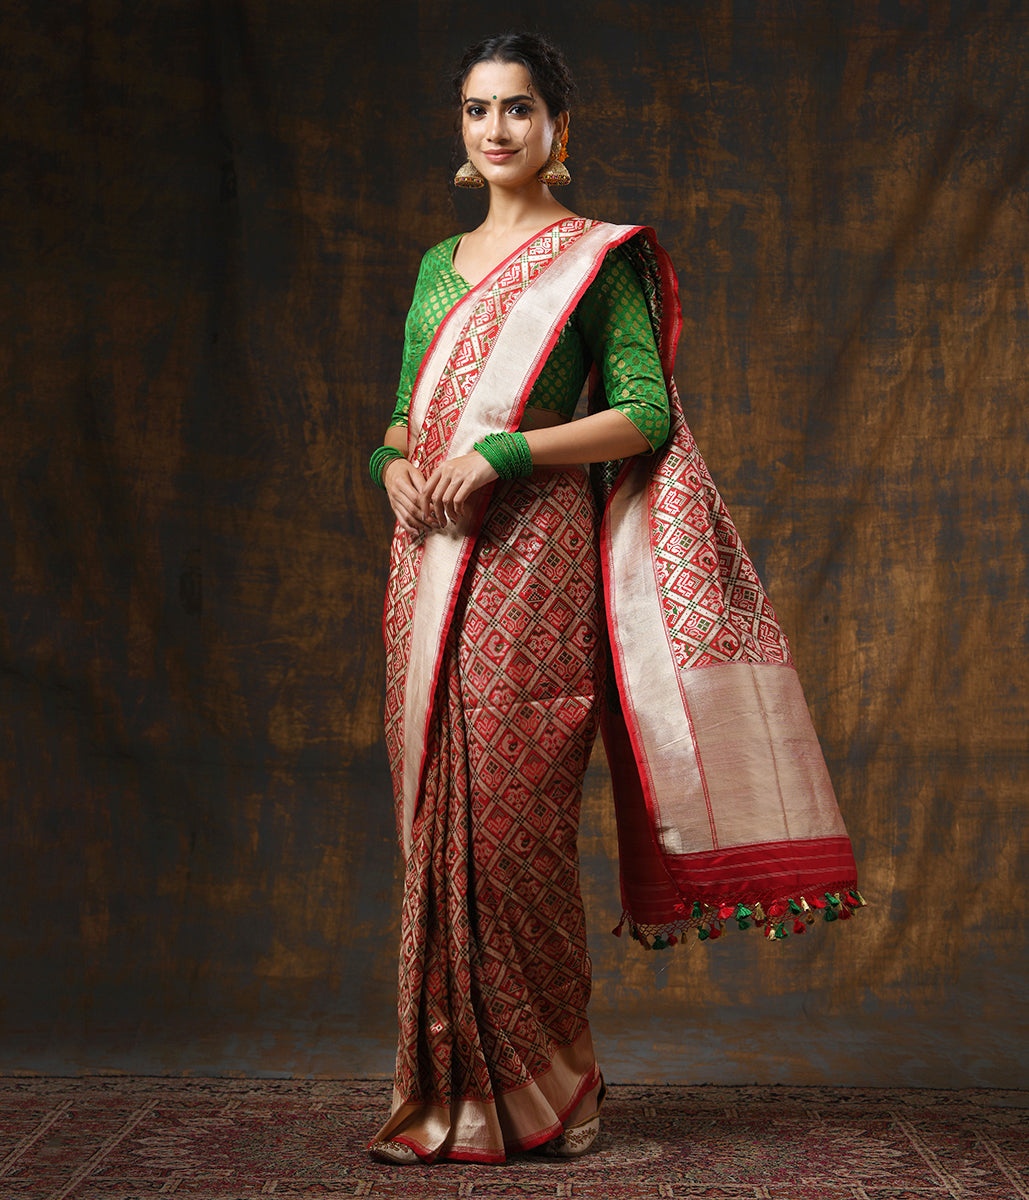 Handwoven Red Patola Banarasi Saree with Green Meenakari